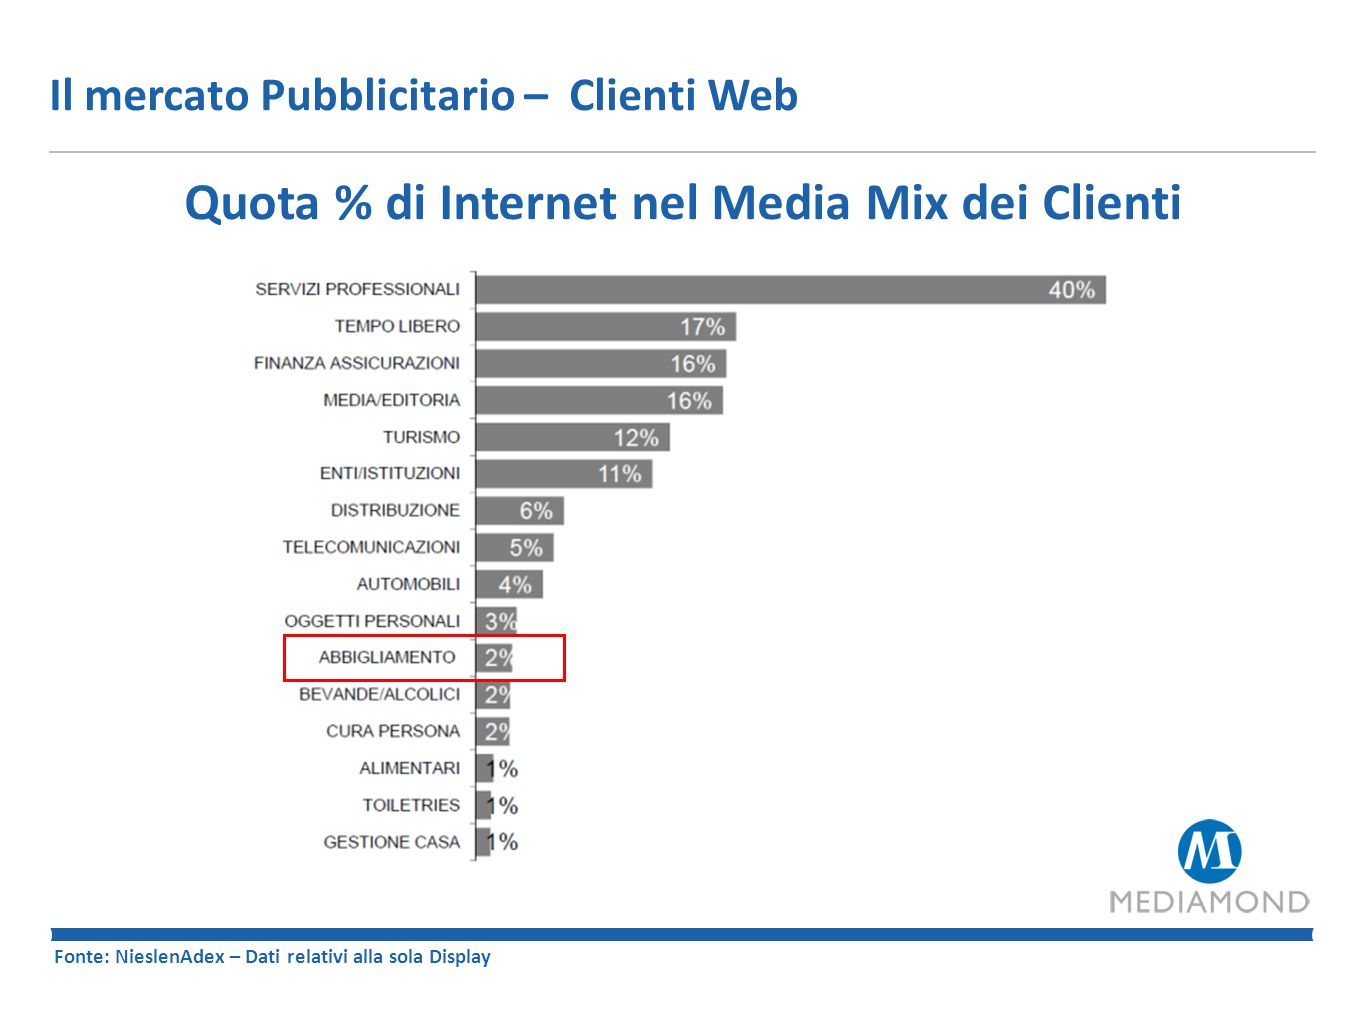 Quota % di Internet nel Media Mix dei Clienti